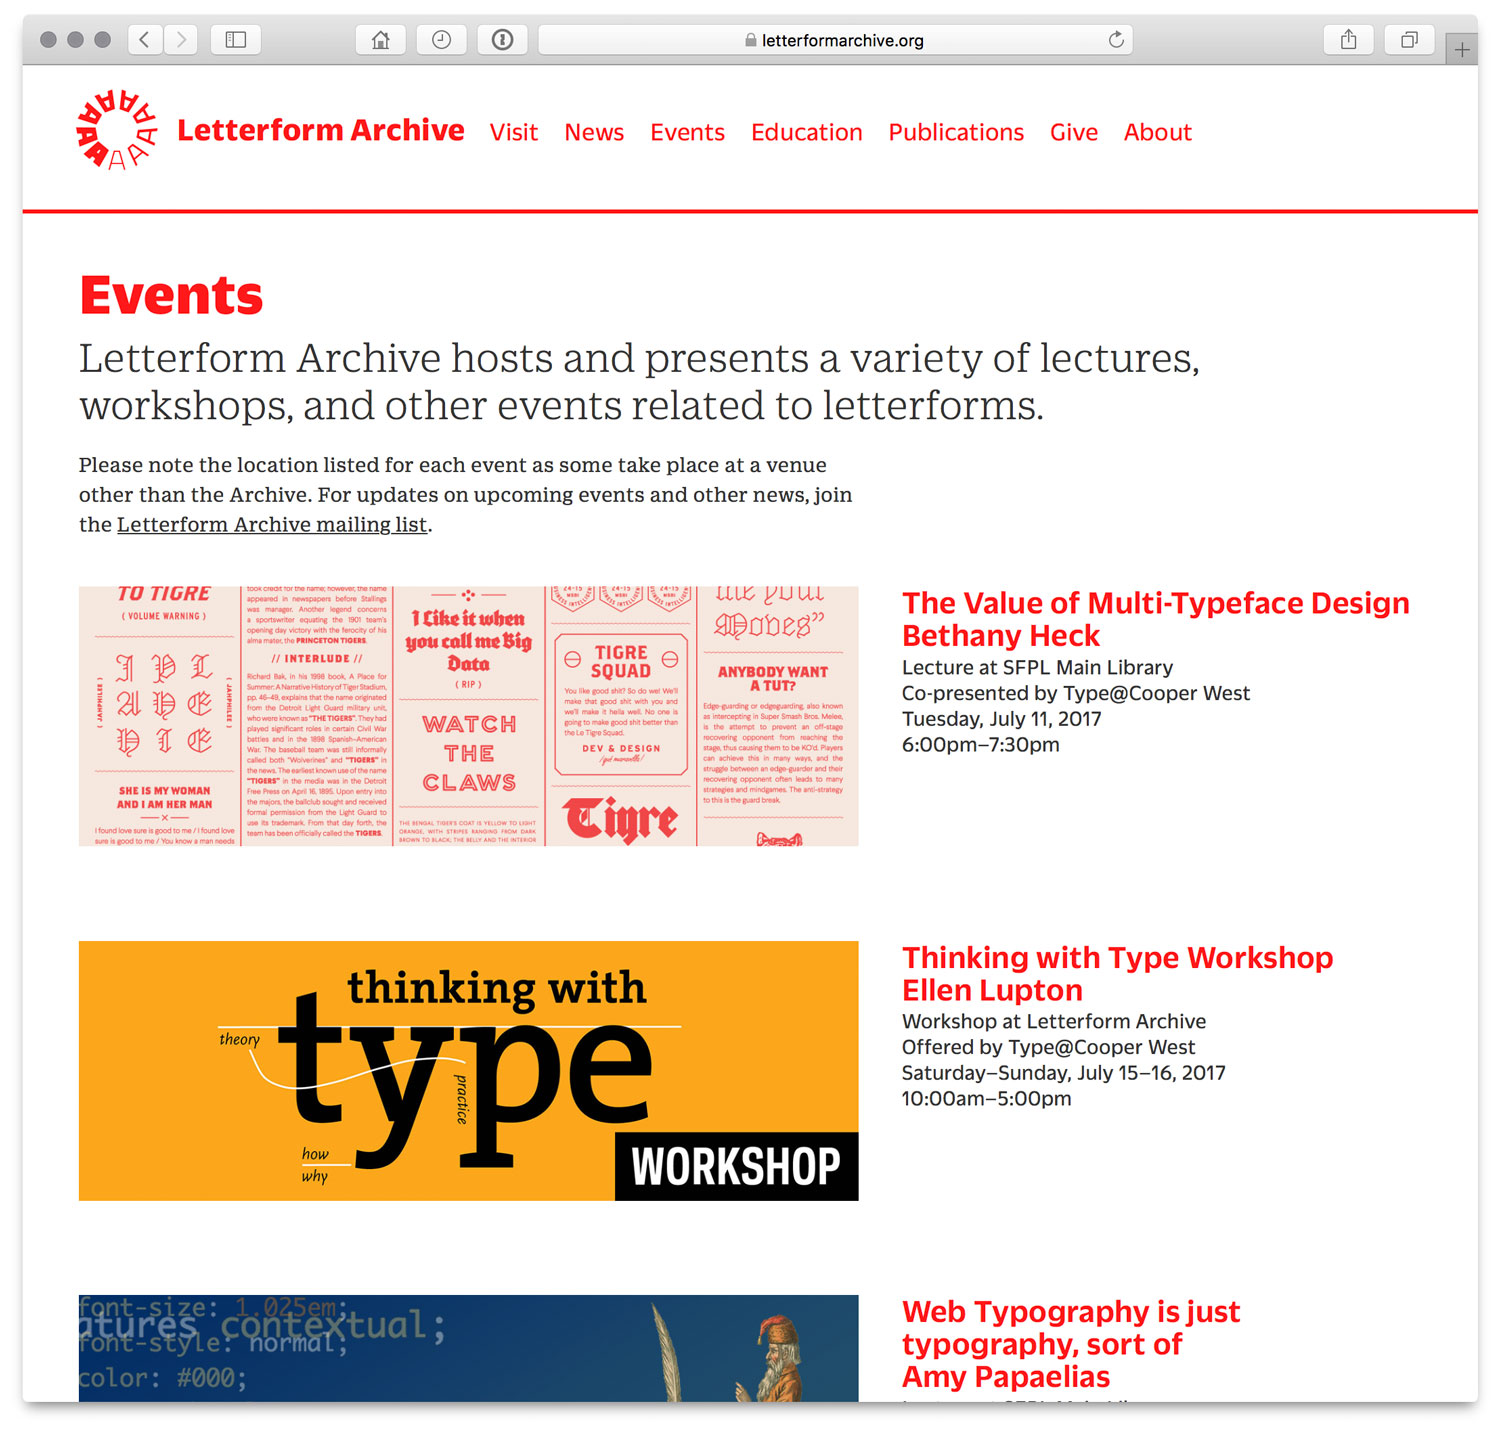 A screenshot of the Events page of Letterform Archive's website in July 2017